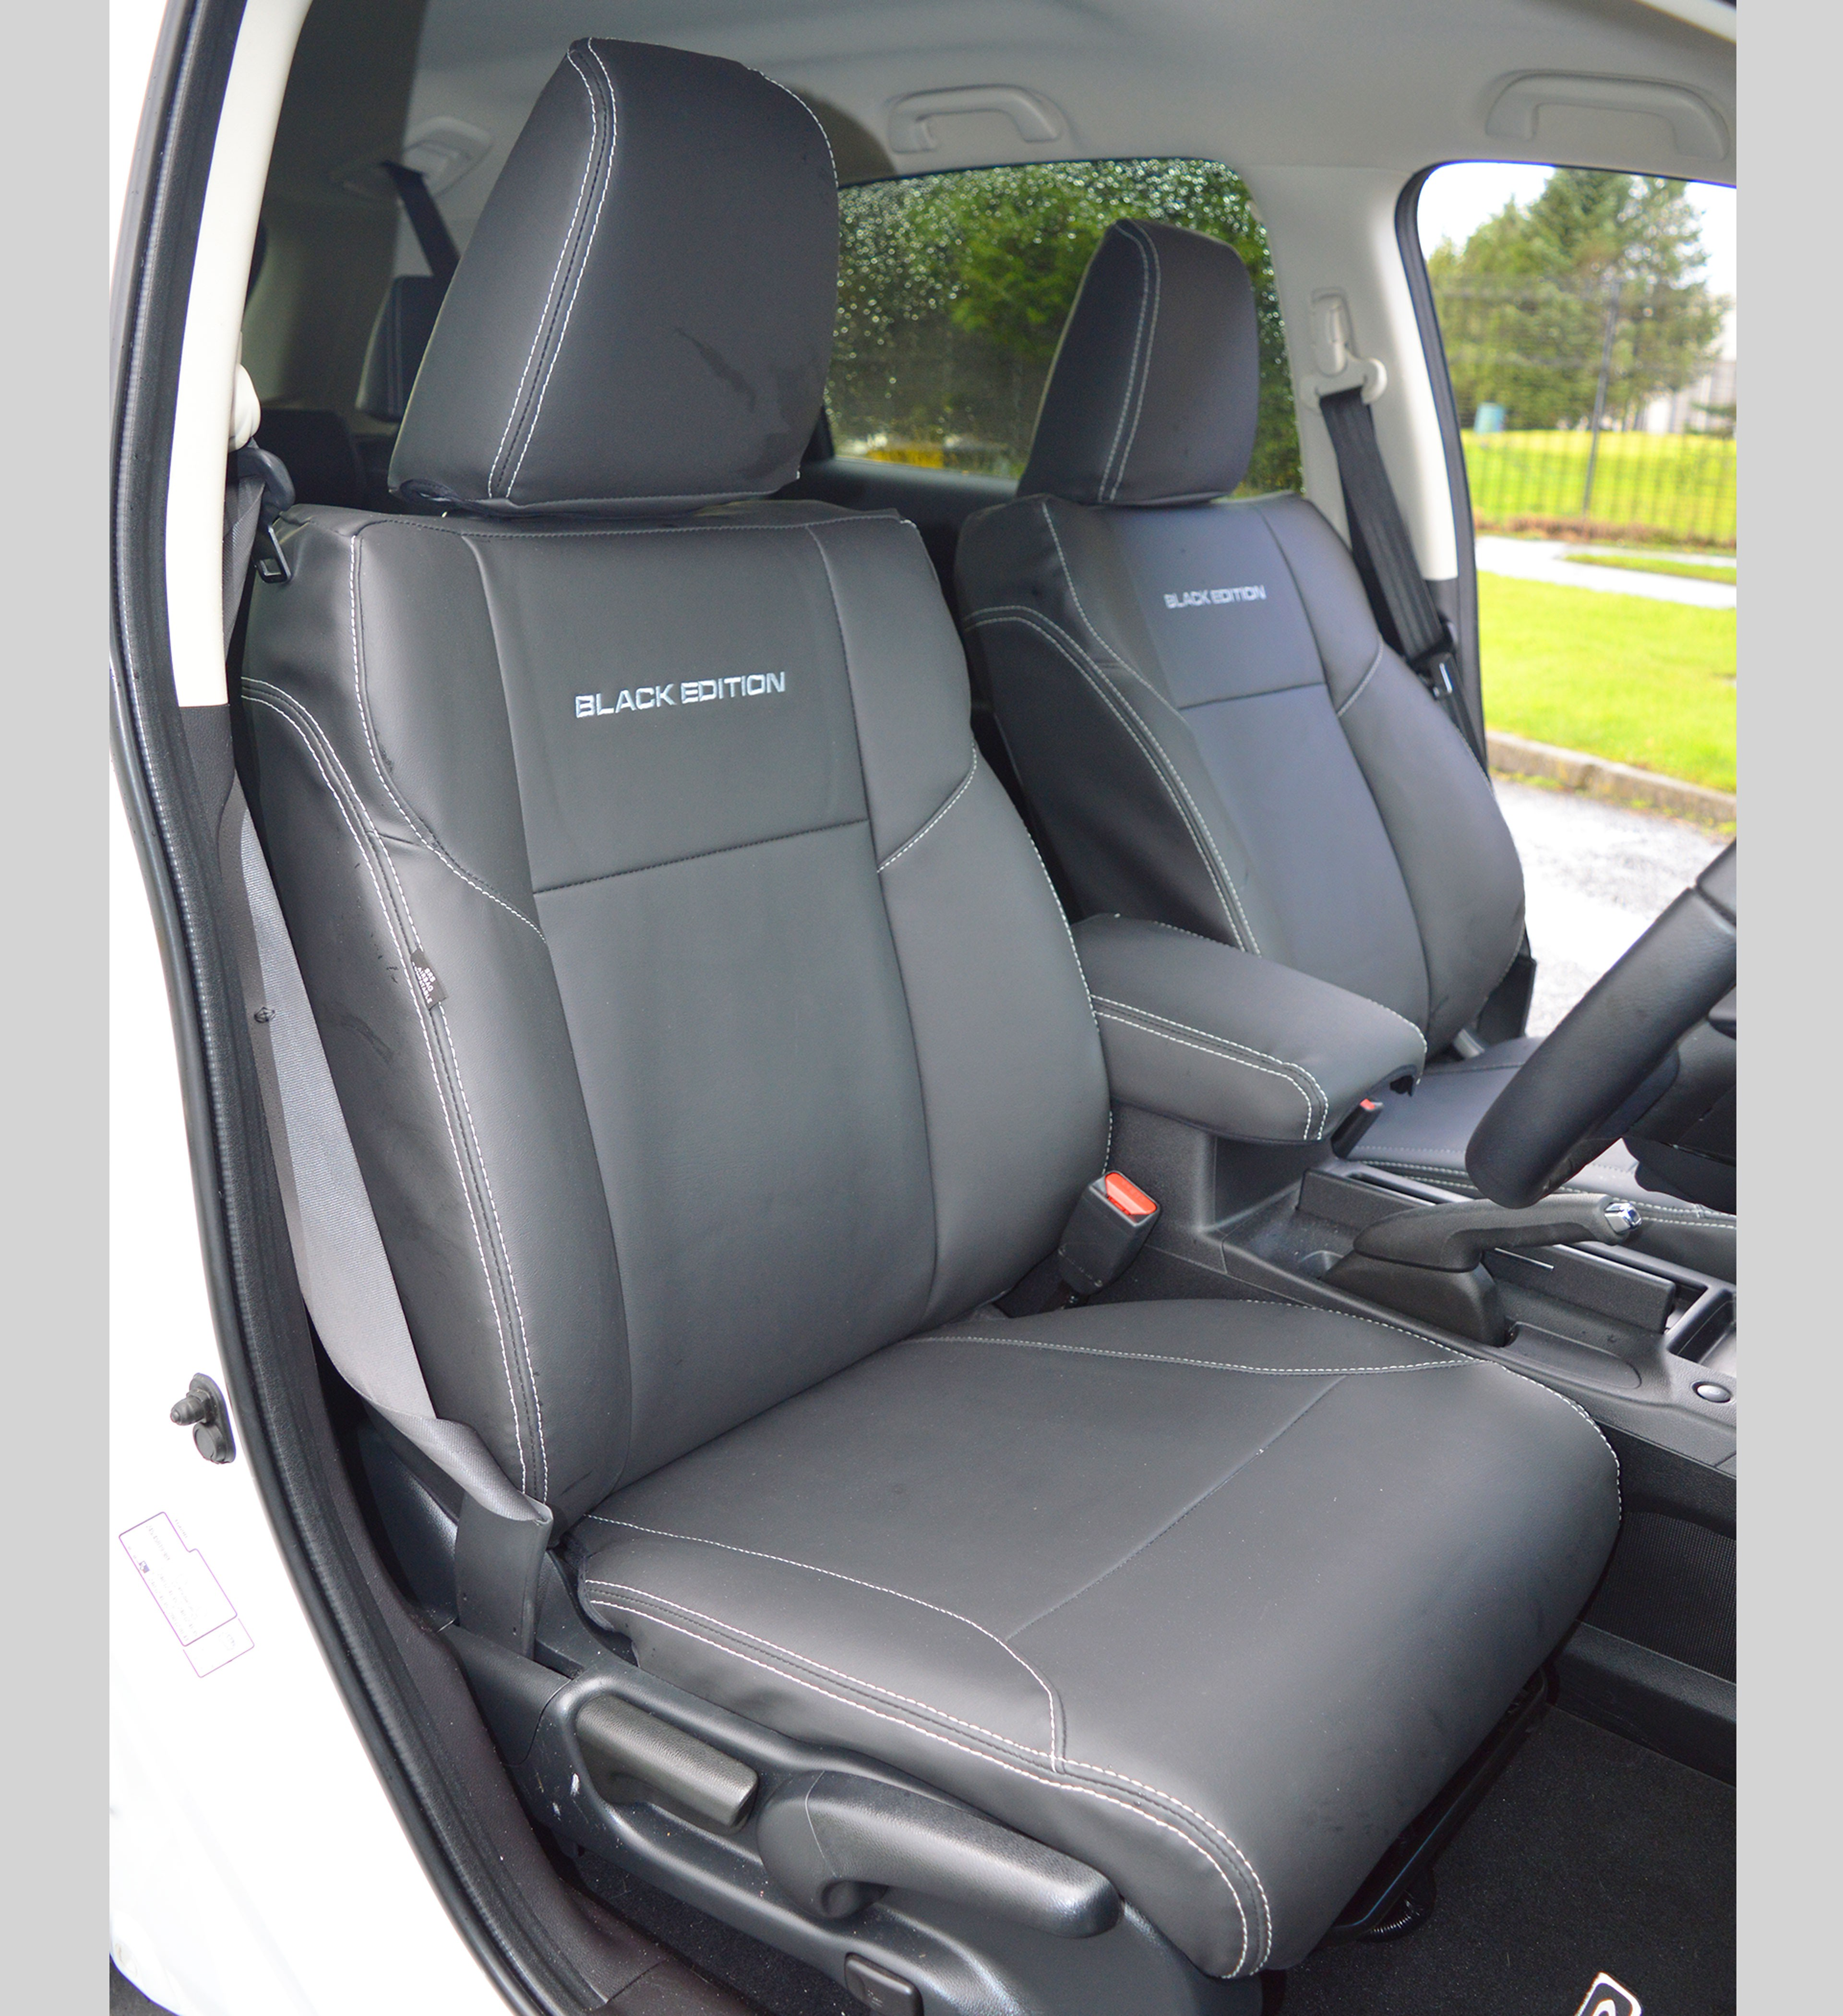 honda crv car seat covers uk velcromag. Black Bedroom Furniture Sets. Home Design Ideas